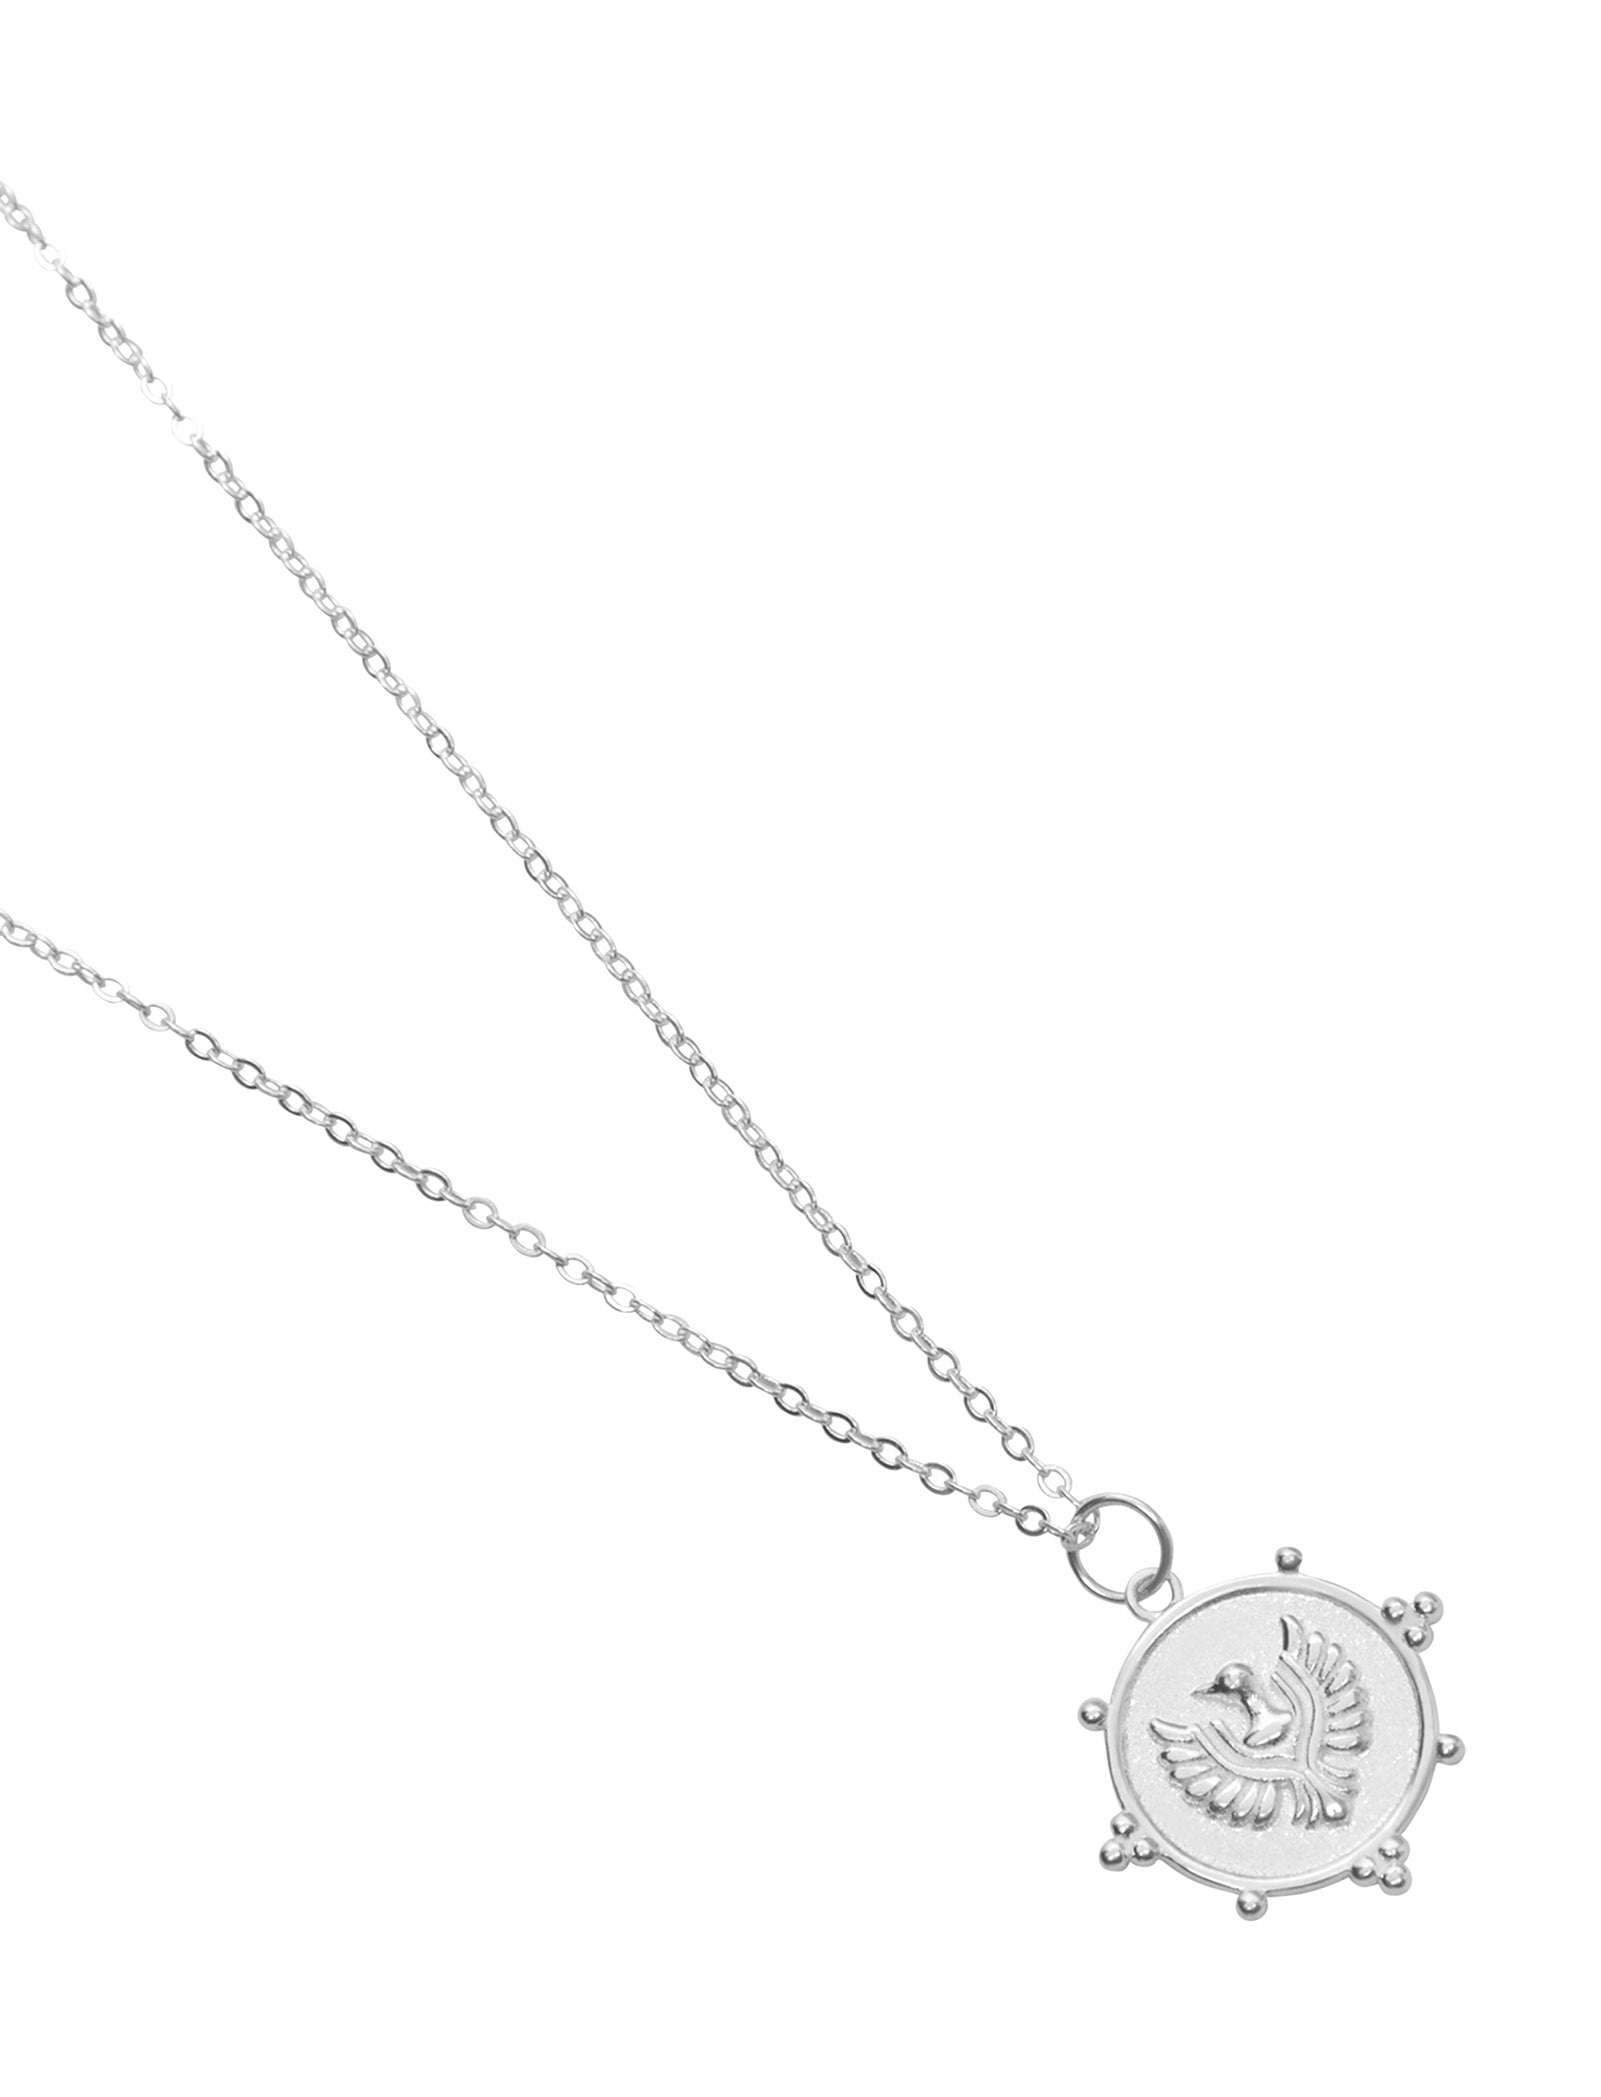 Melody Necklace